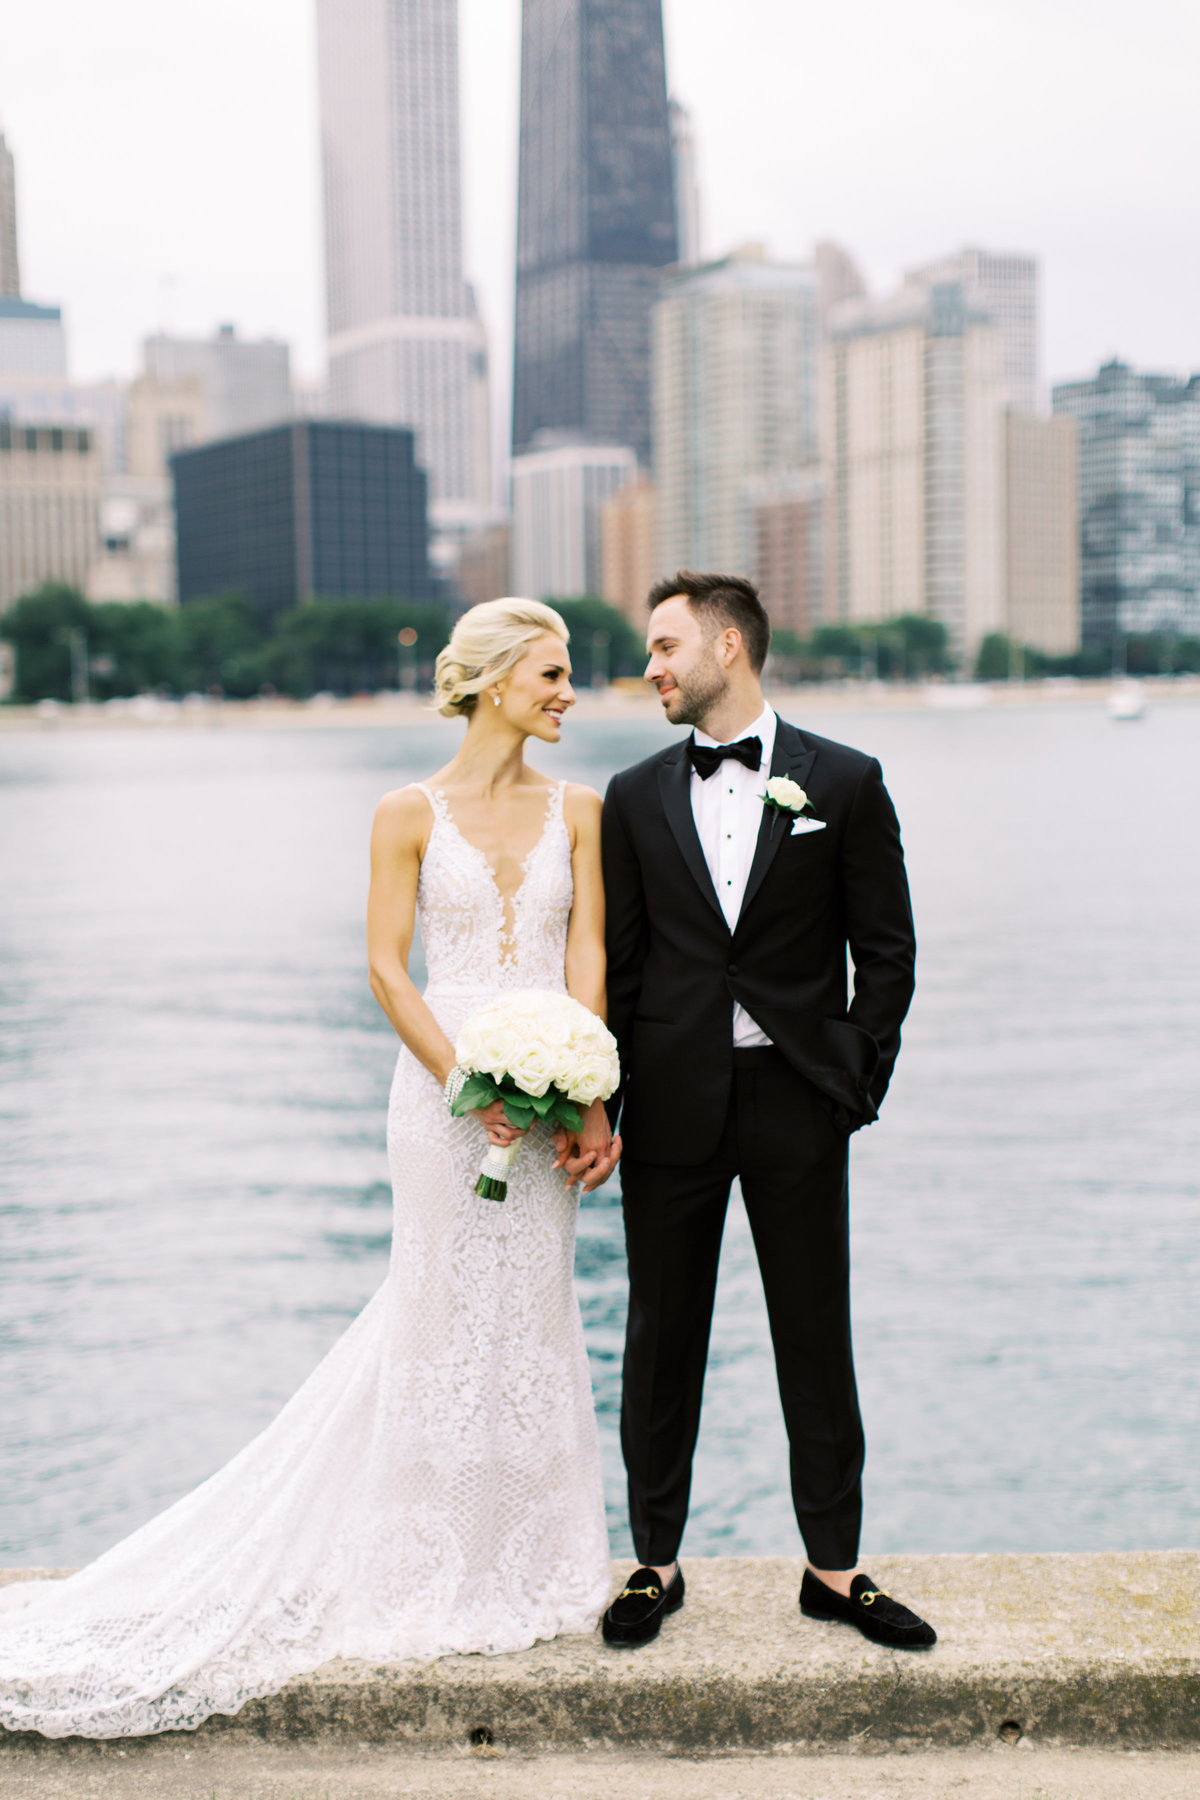 BailieTyler_Wedding_September212019_517